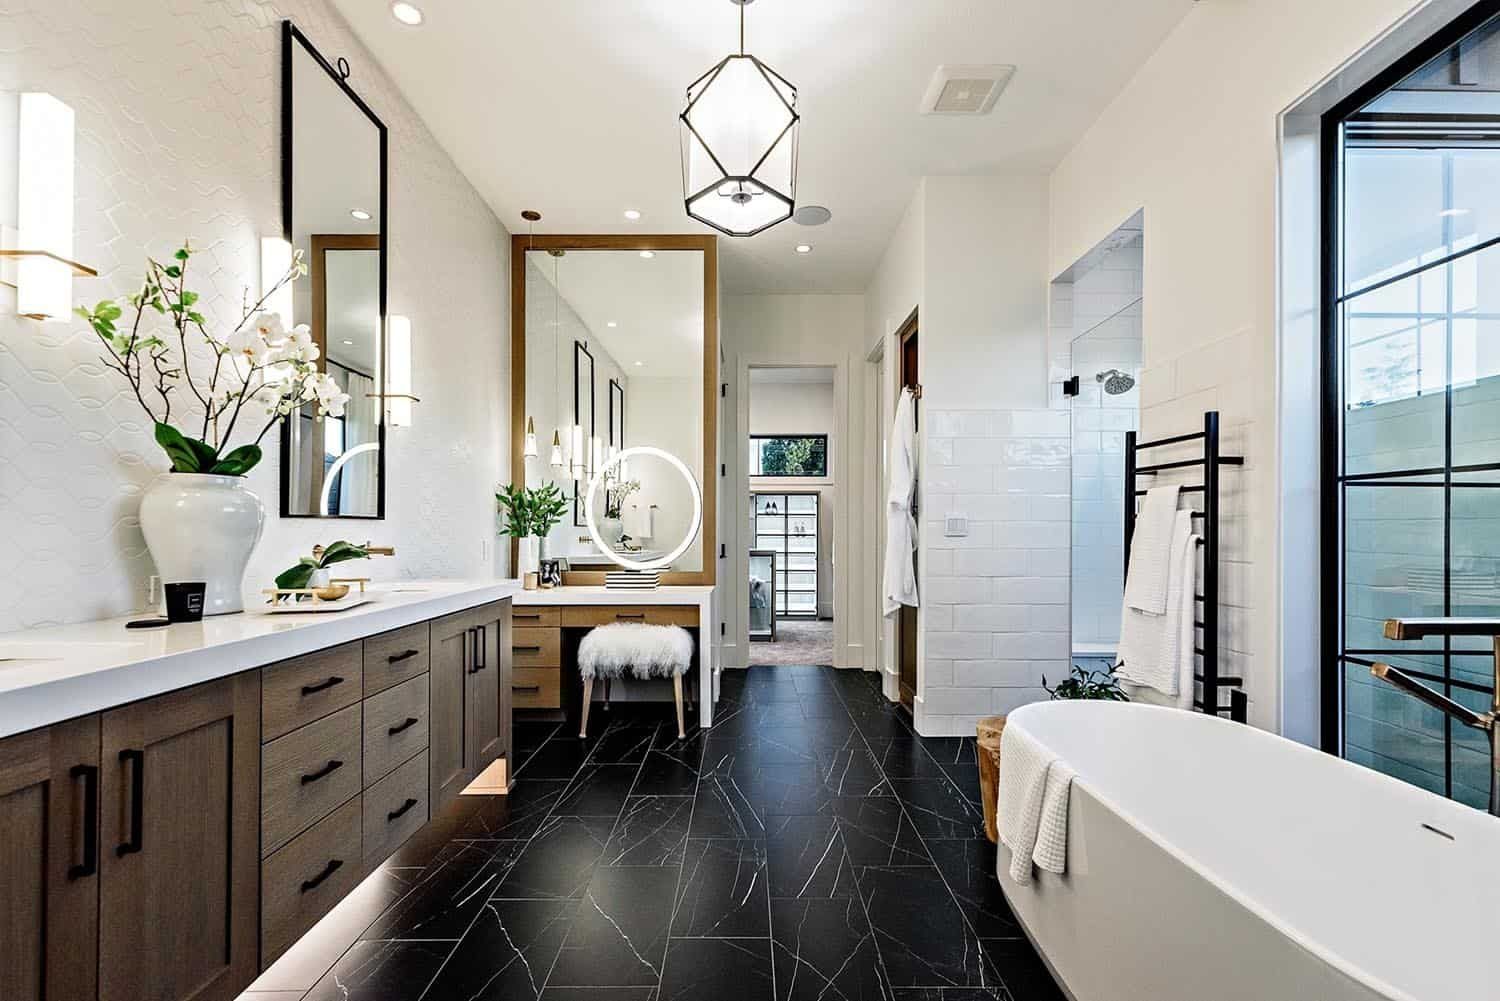 Farmhouse Style House In Oregon Has Absolutely Delightful Design Ideas In 2020 Farmhouse Style House Bathroom Remodel Master House